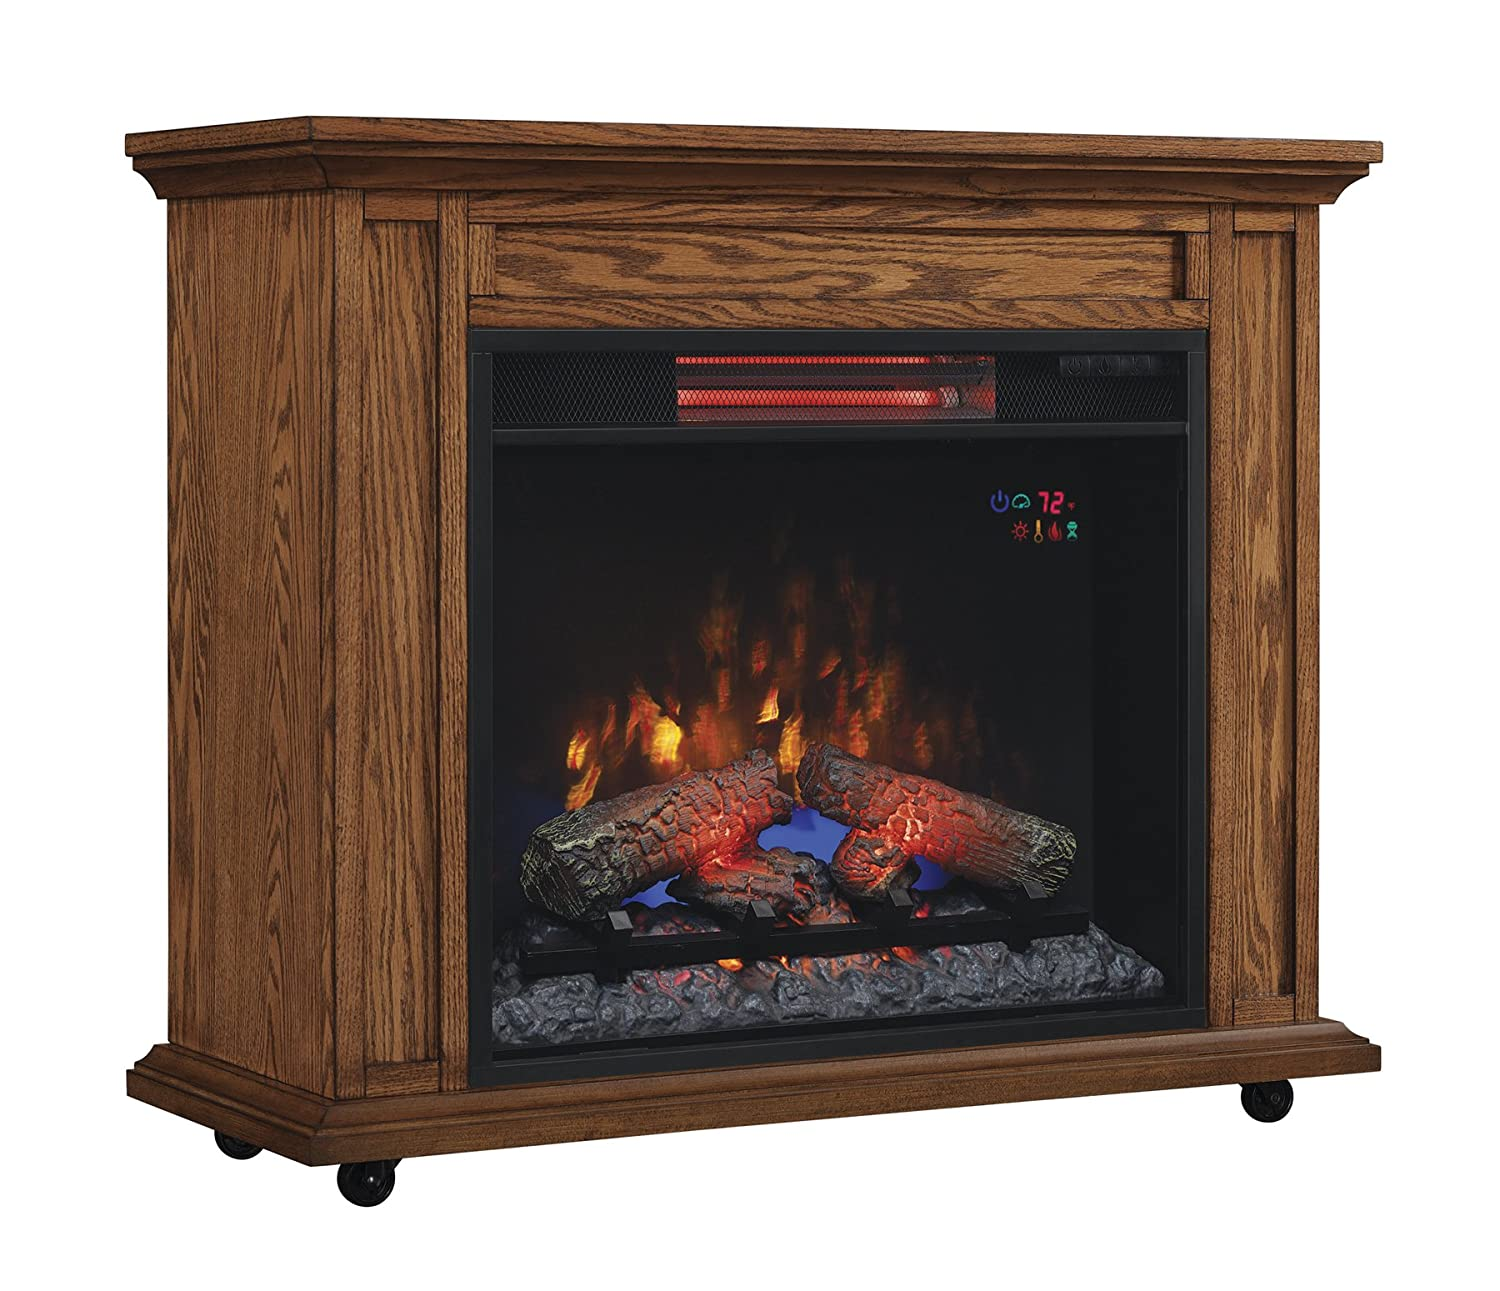 ClassicFlame 23IRM1500-O107 Rolling Mantel with Infrared Quartz Fireplace, Oak